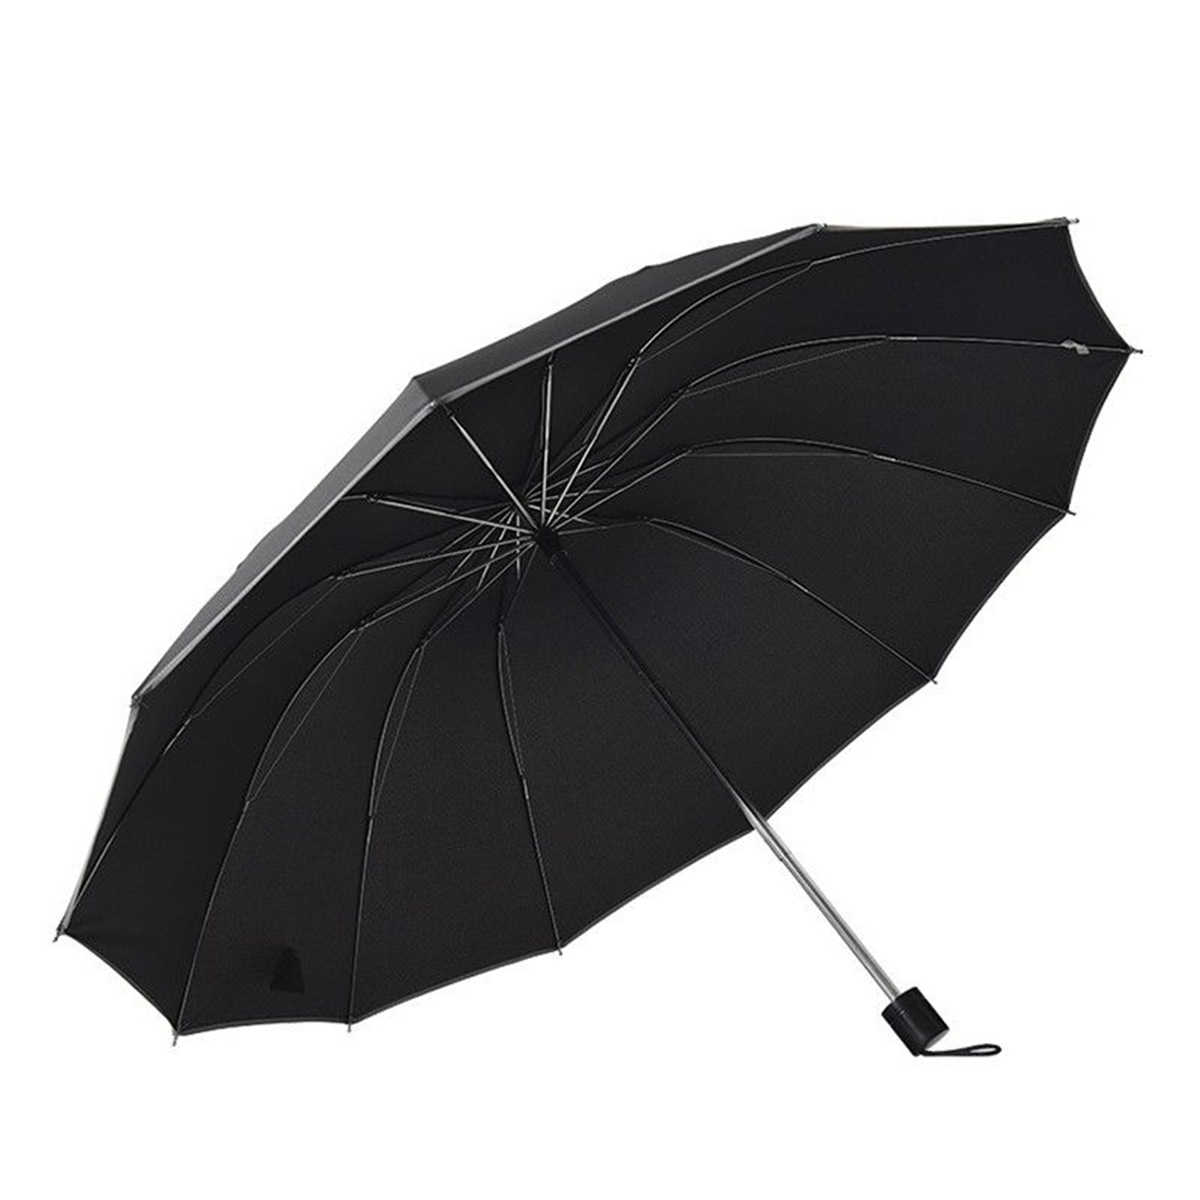 60a676c10ac8 Large Folding Umbrella Men Rain Woman 3 Fold Umbrella Automatic Windproof  Umbrellas 10/12 Ribs Parasol Rainy Sunny Umbrella